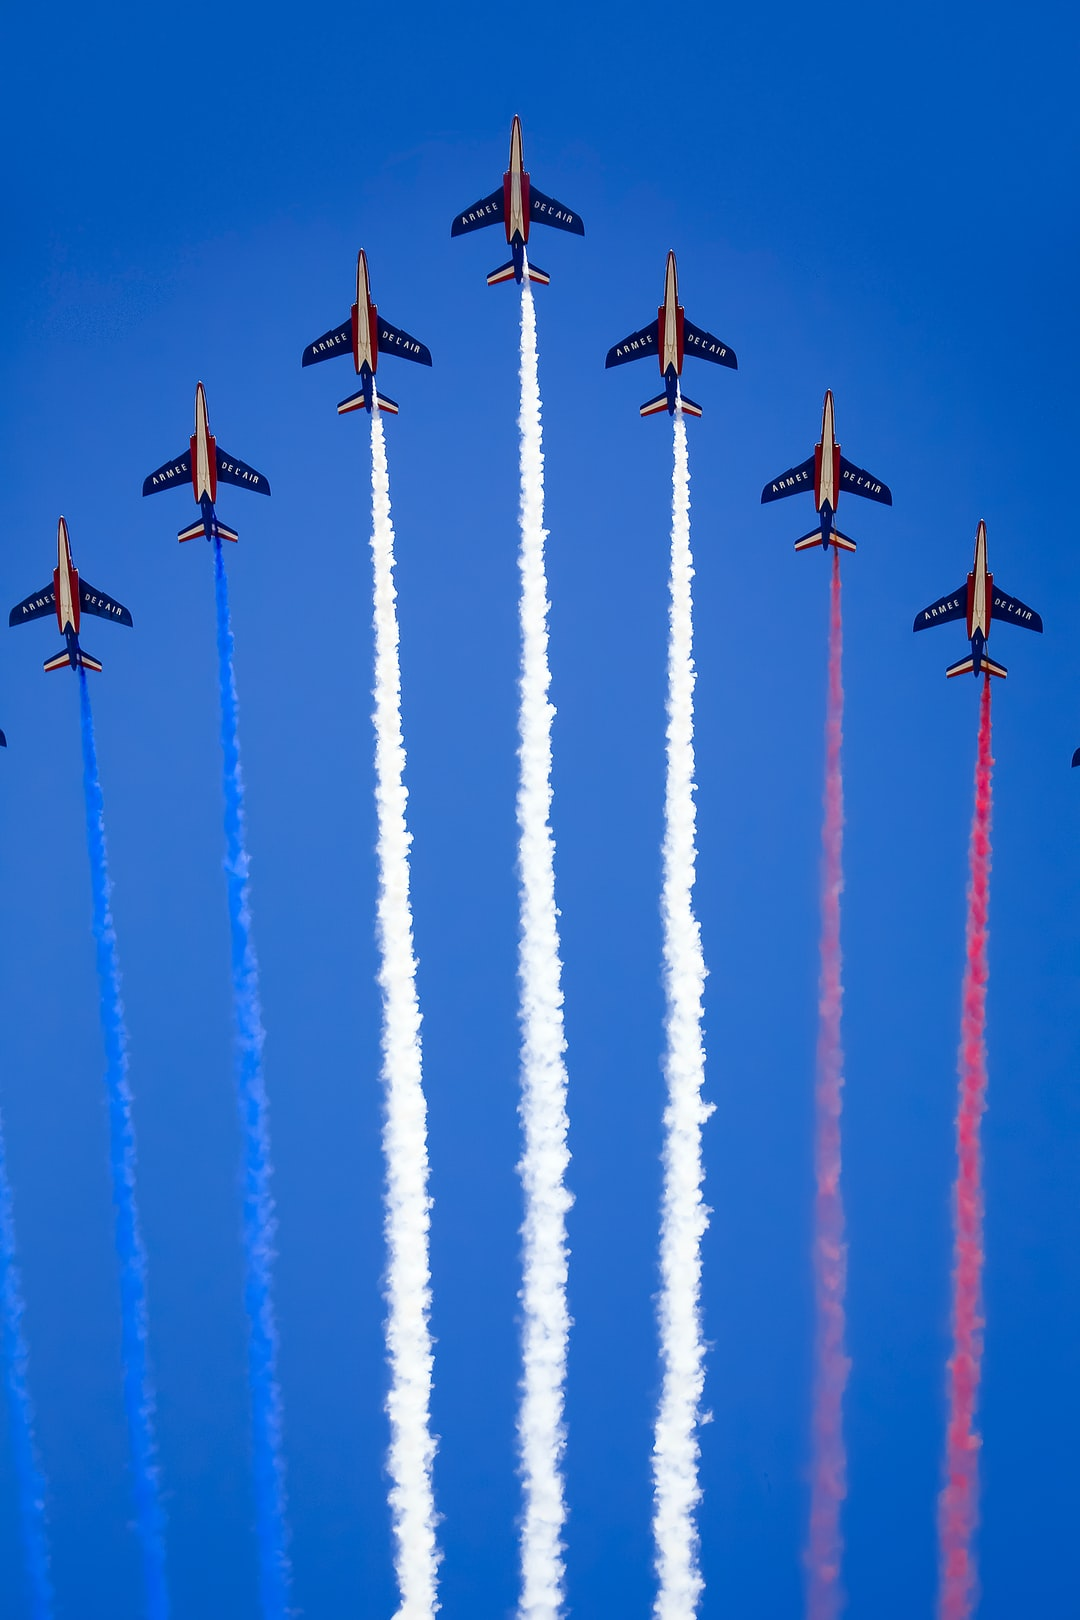 On July 14, Mirage fighter planes of the French Air Force fly over the huge crowds lining the Champs Elysees, in celebration of French independence.